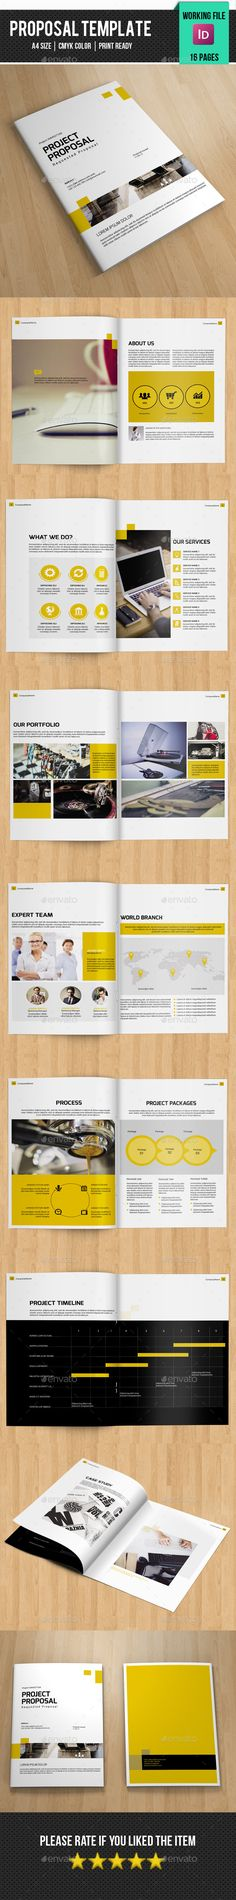 Vector Brochure Template Layout Cover Design Annual Report - project proposal template free